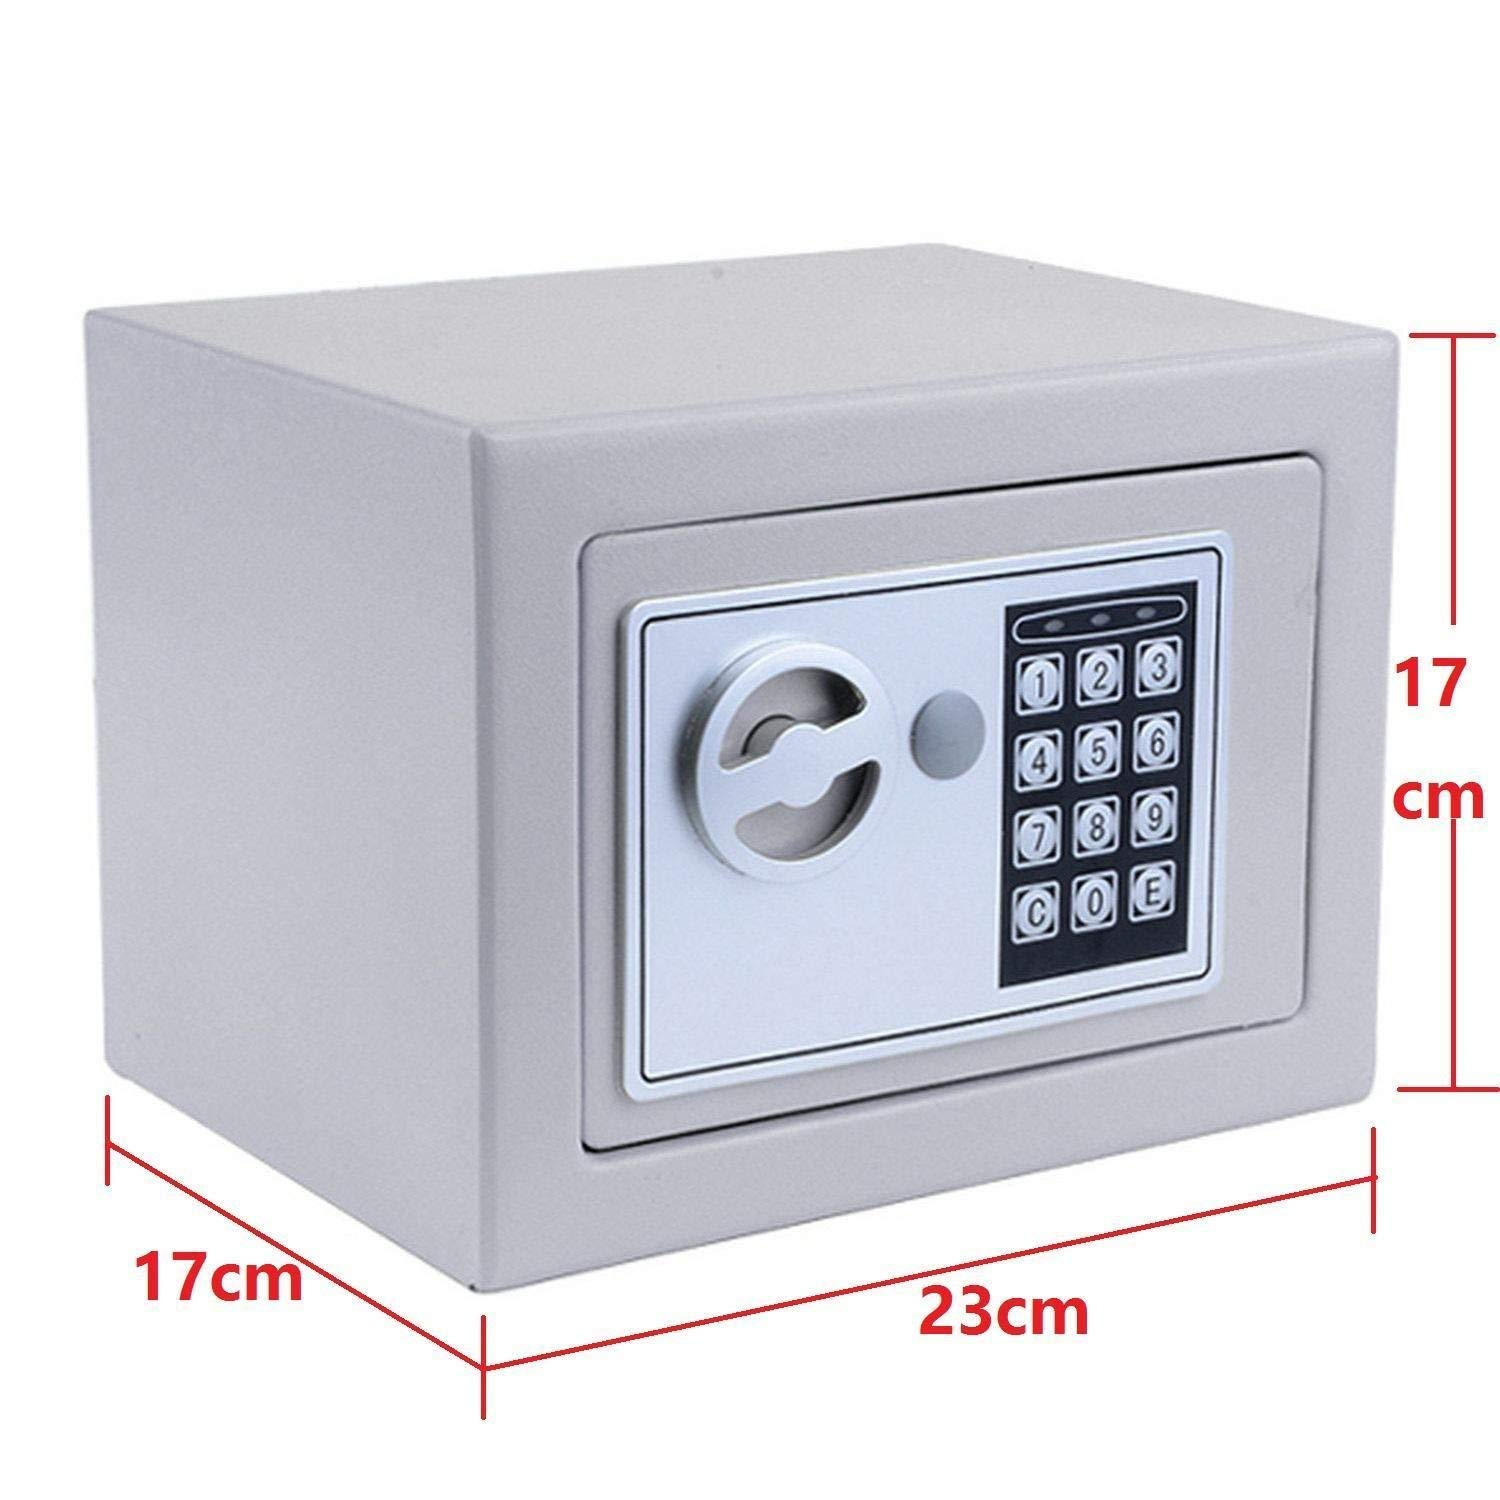 Hosmat Electronic Digital Security Safe Box, Fireproof Wall-Anchoring Safe Deposit Box for Home Office Hotel Business Jewelry Money (Silvery) by balanu (Image #5)